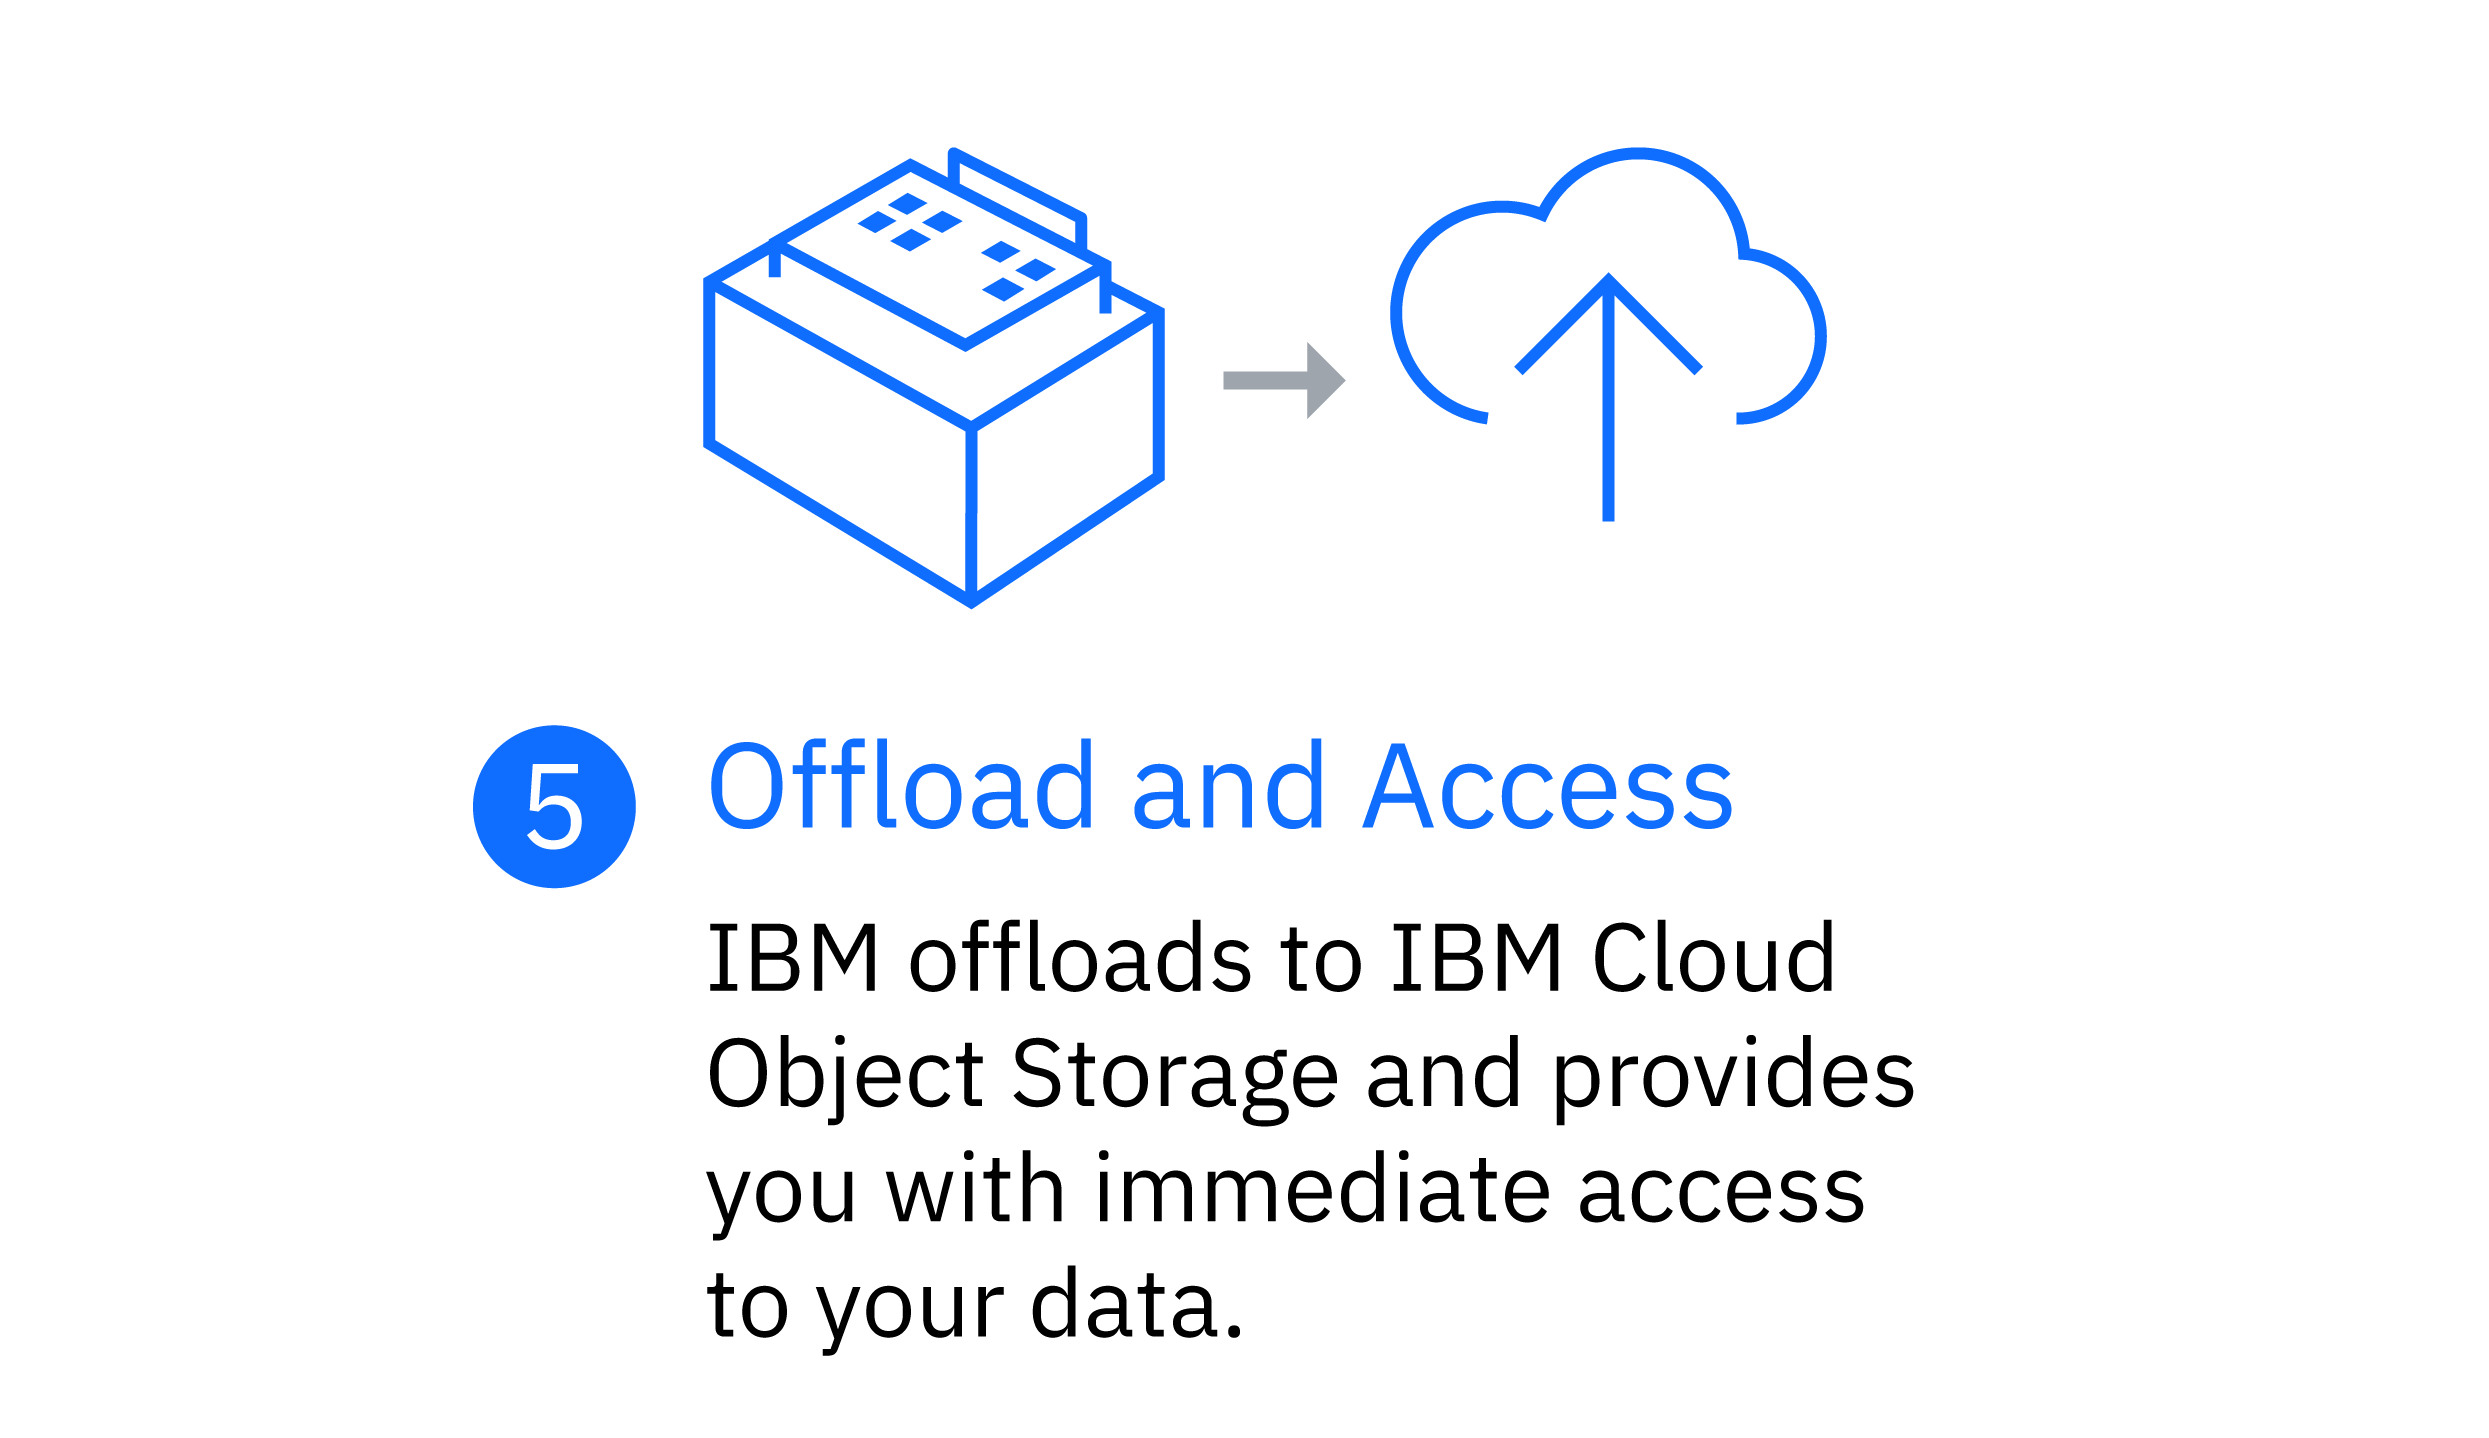 Offload and access